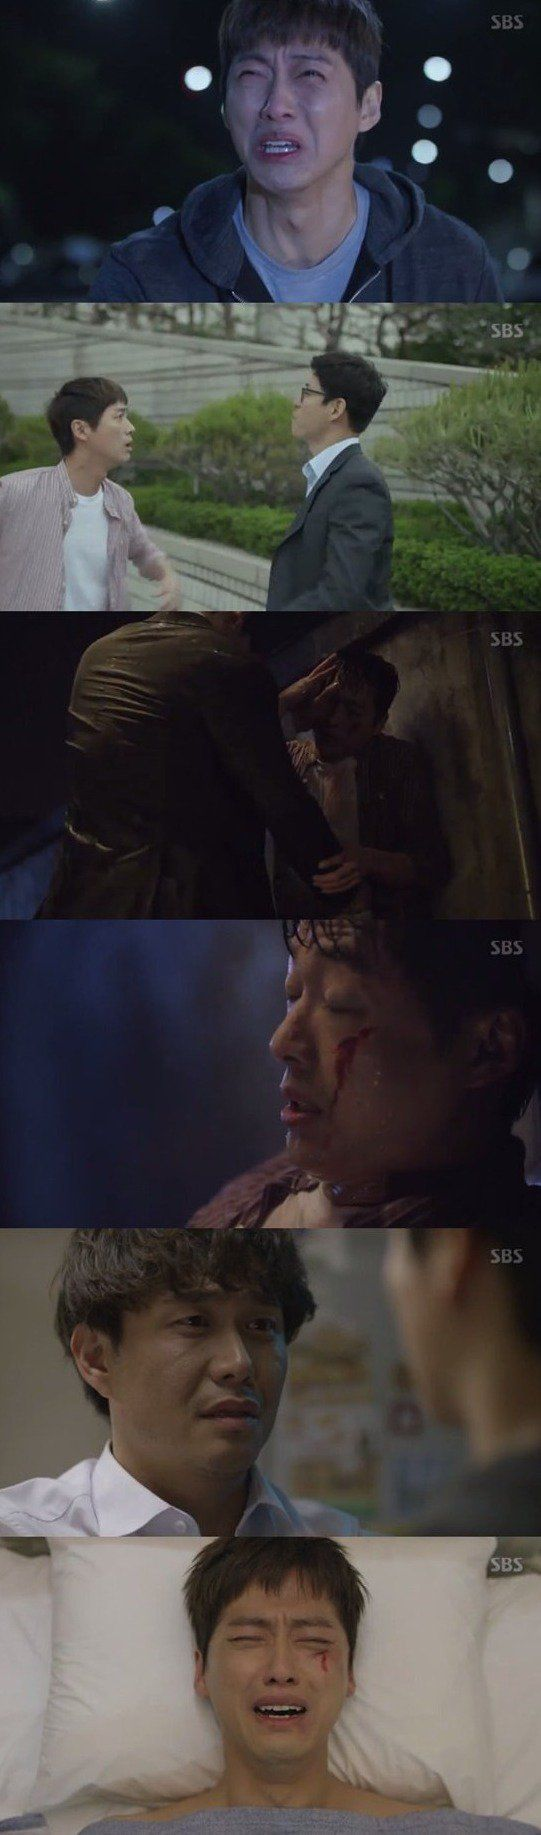 [Spoiler] Added episodes 3 and 4 captures for the #kdrama 'Falsify'